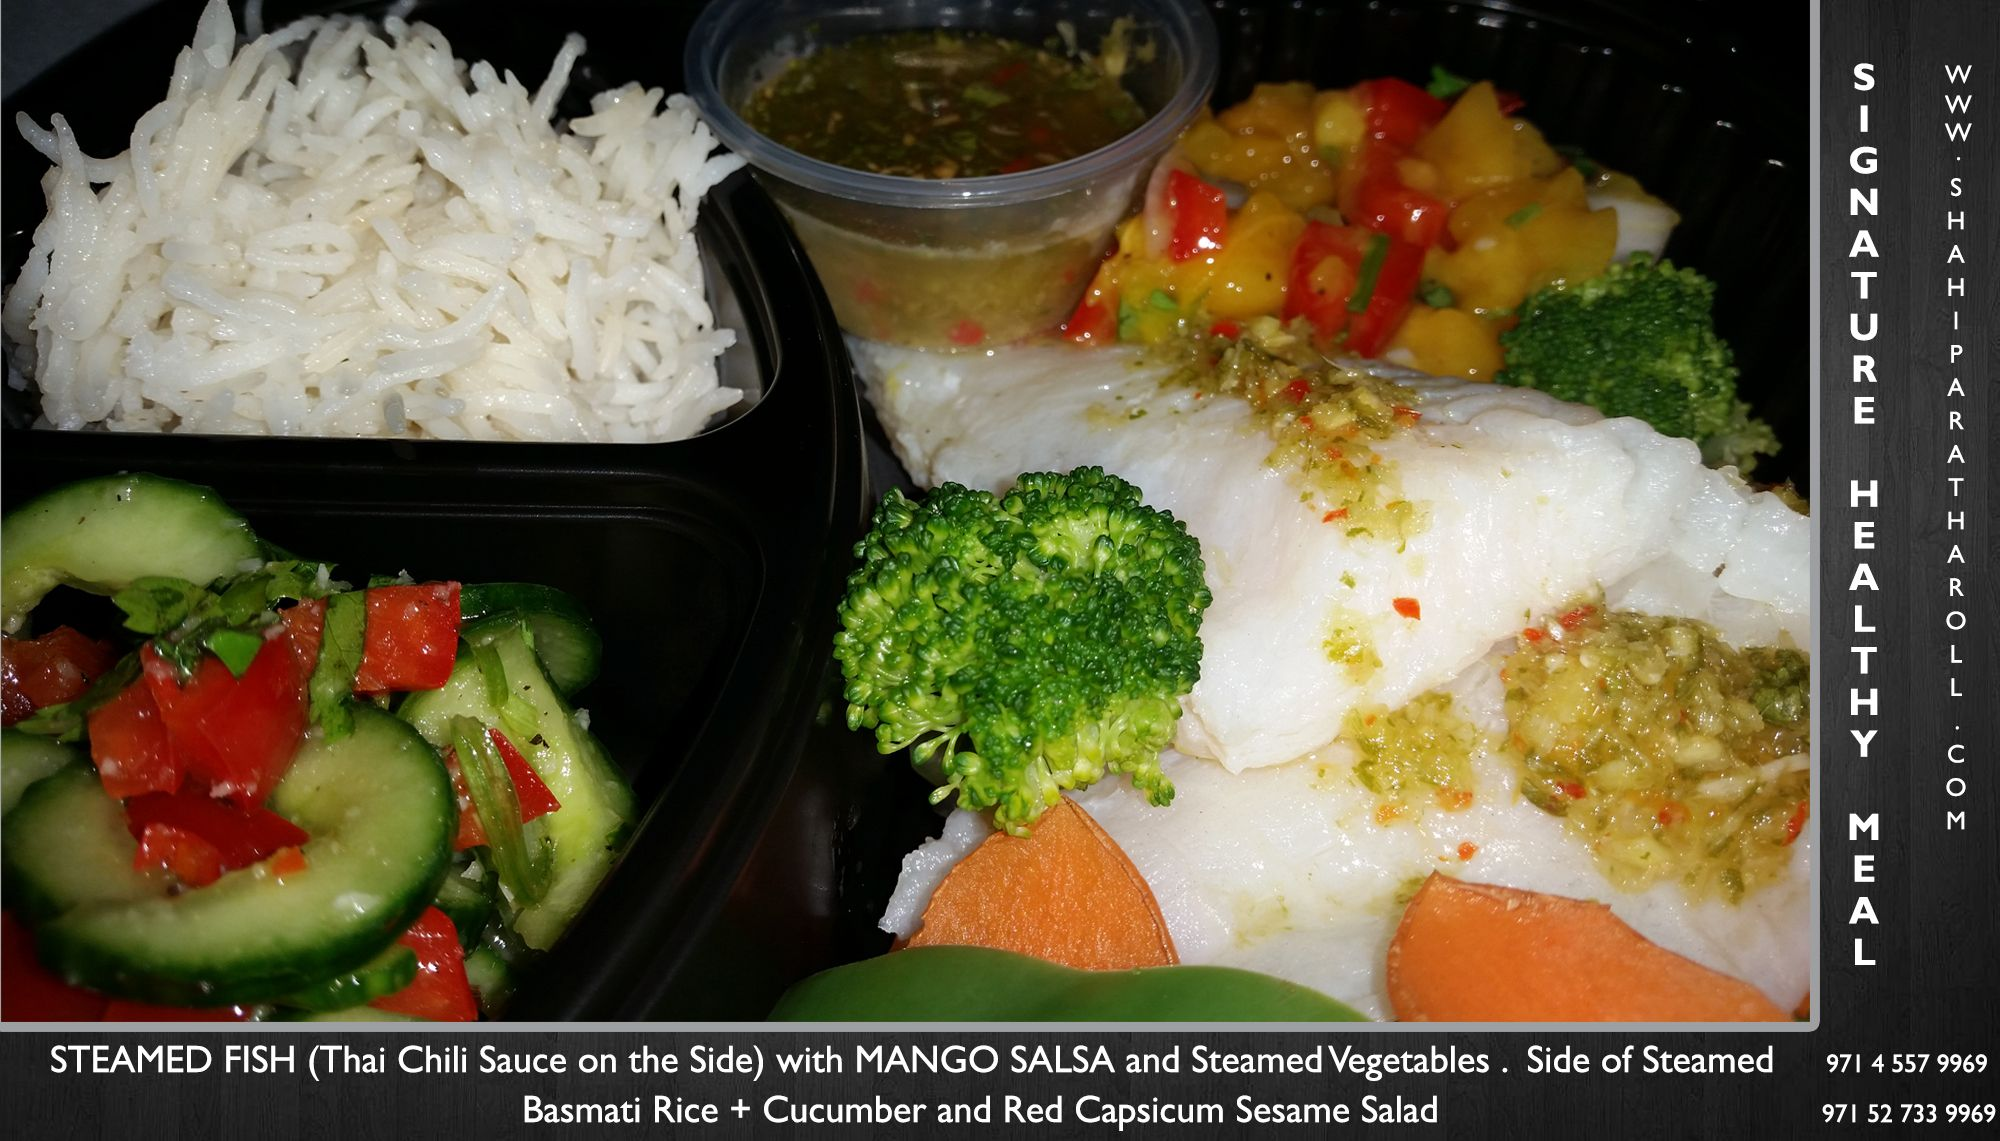 Engaging Lunchbox Delivery Lunch Delivery Delivery Restaurants That Deliver Near Me That Are Open Right Now Restaurants That Deliver Near Me Mexican Lunch Delivery Delivery Restaurantsin Online Lunchb nice food Restaurants That Deliver Near Me